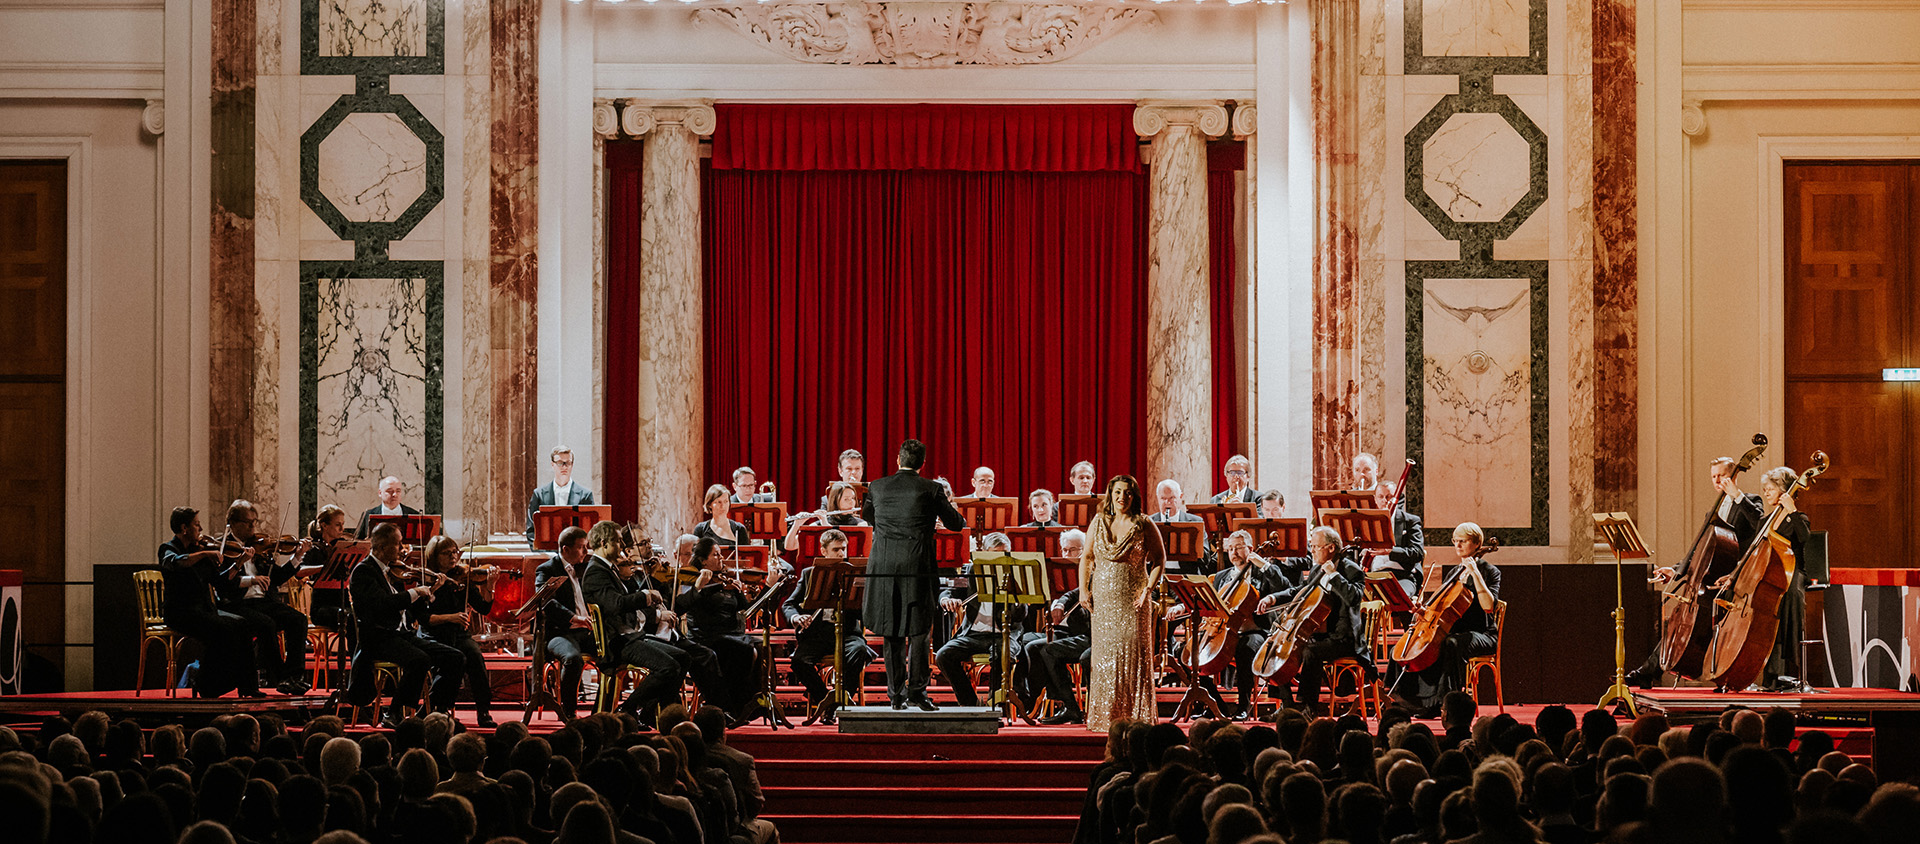 classical music with Selvana Salmasi at the Festsaal of the Hofburg Vienna - Imperial Palace